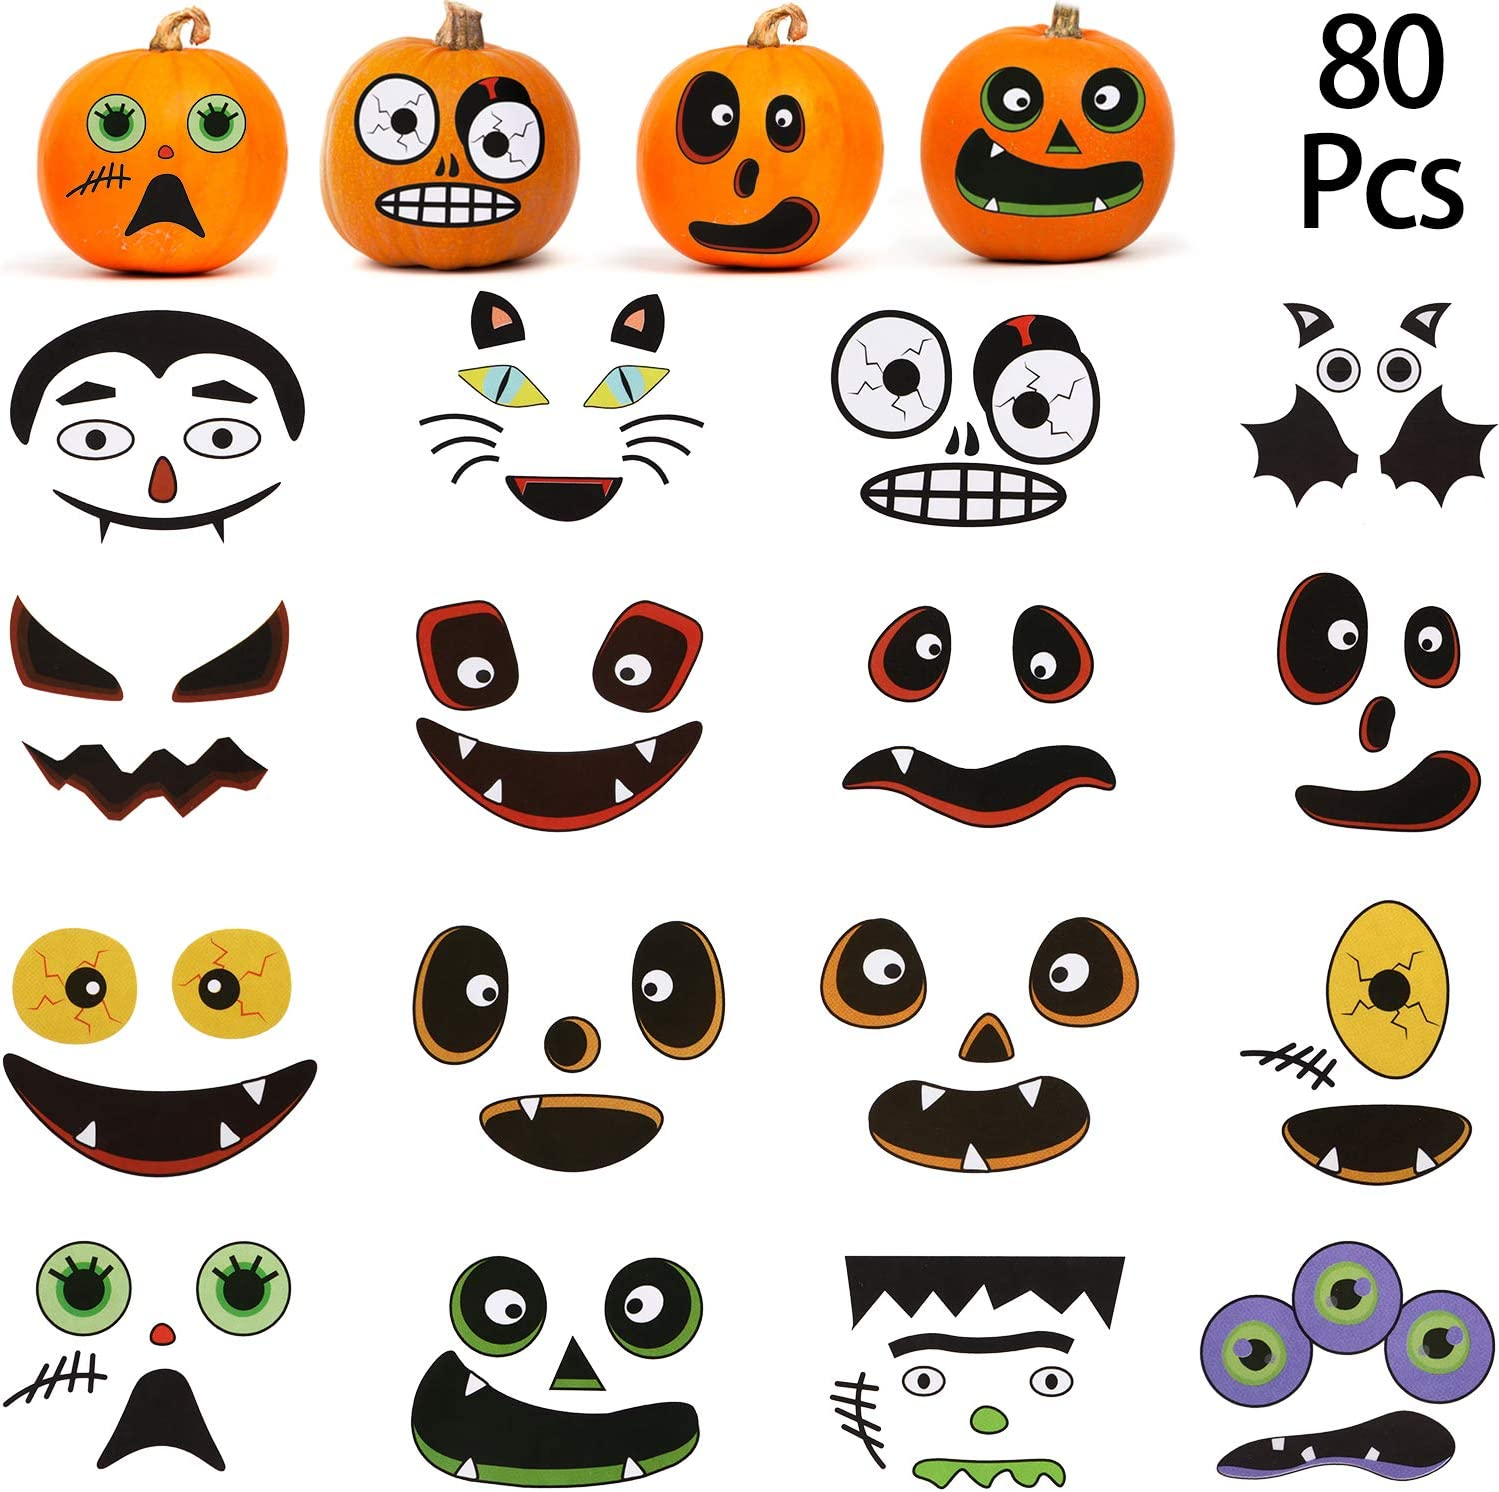 80 Sets Halloween Pumpkin Craft Stickers Pumpkin Face Stickers Trick Or Treat Stickers For Halloween For Halloween Party Decoration Favor 20 Sheets Toys Games